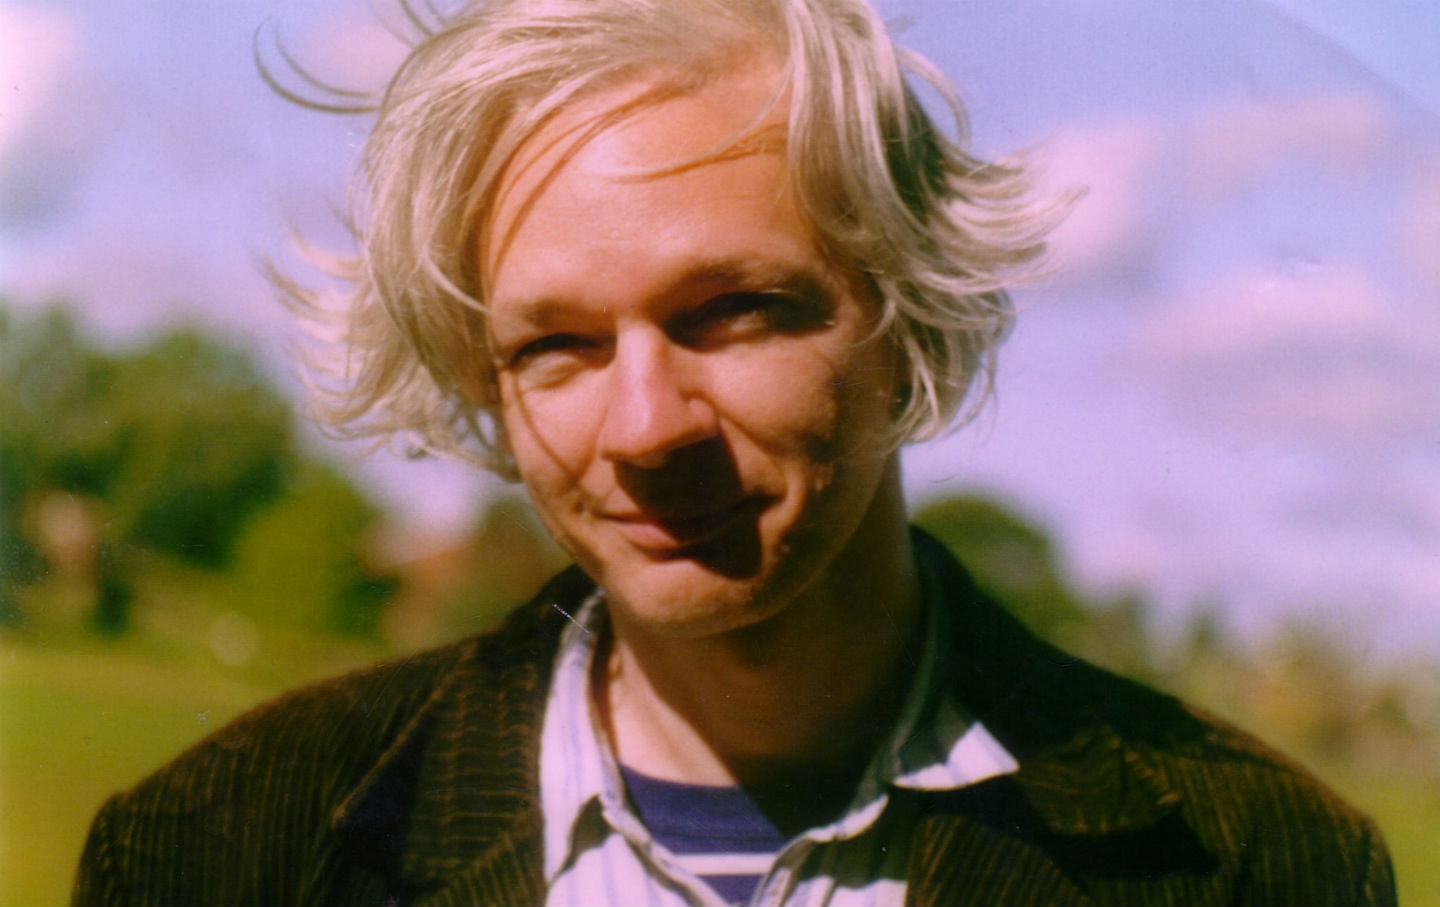 Julian_Assange_cc_img